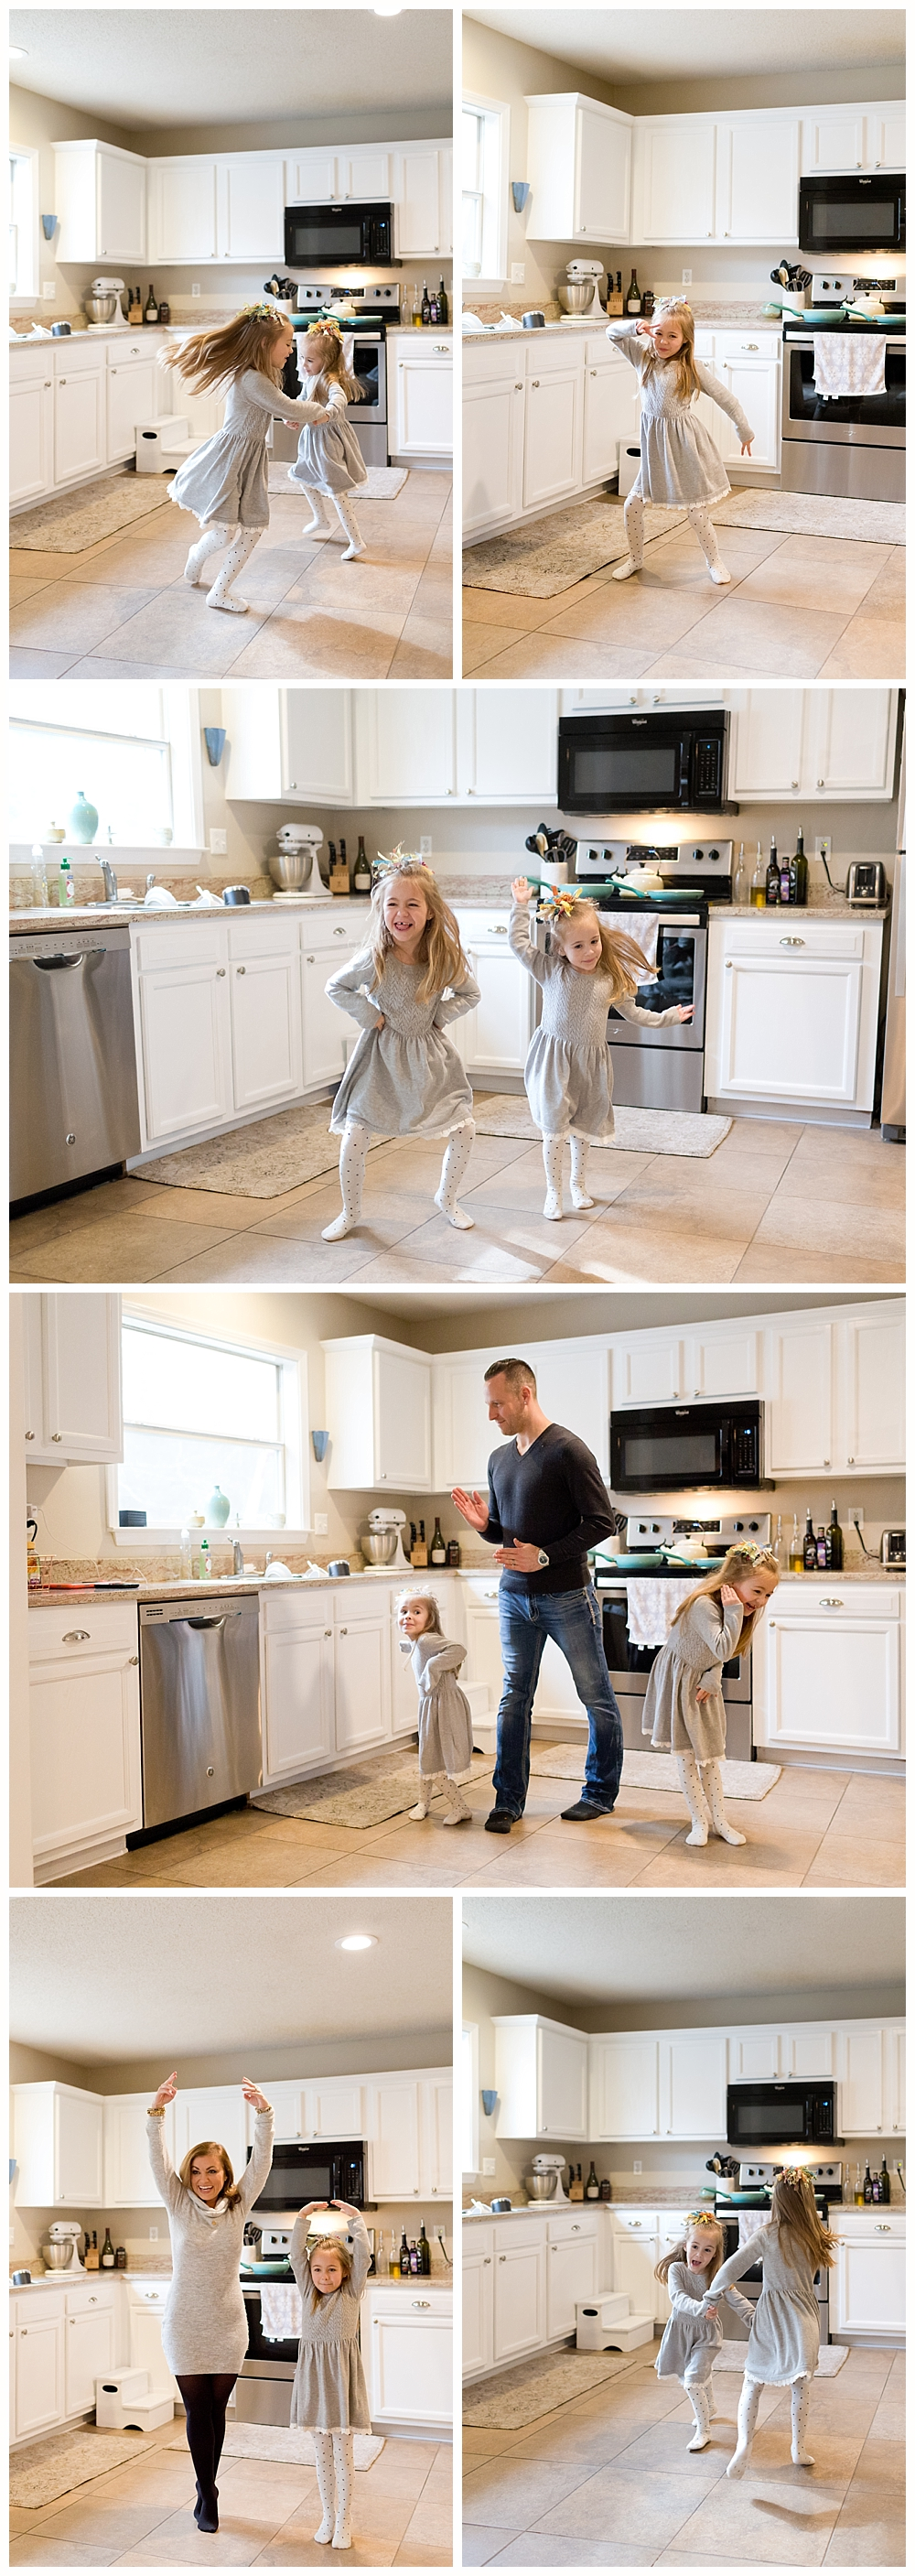 fun family photos at home - dance party in the kitchen - Ocean Springs family photographer